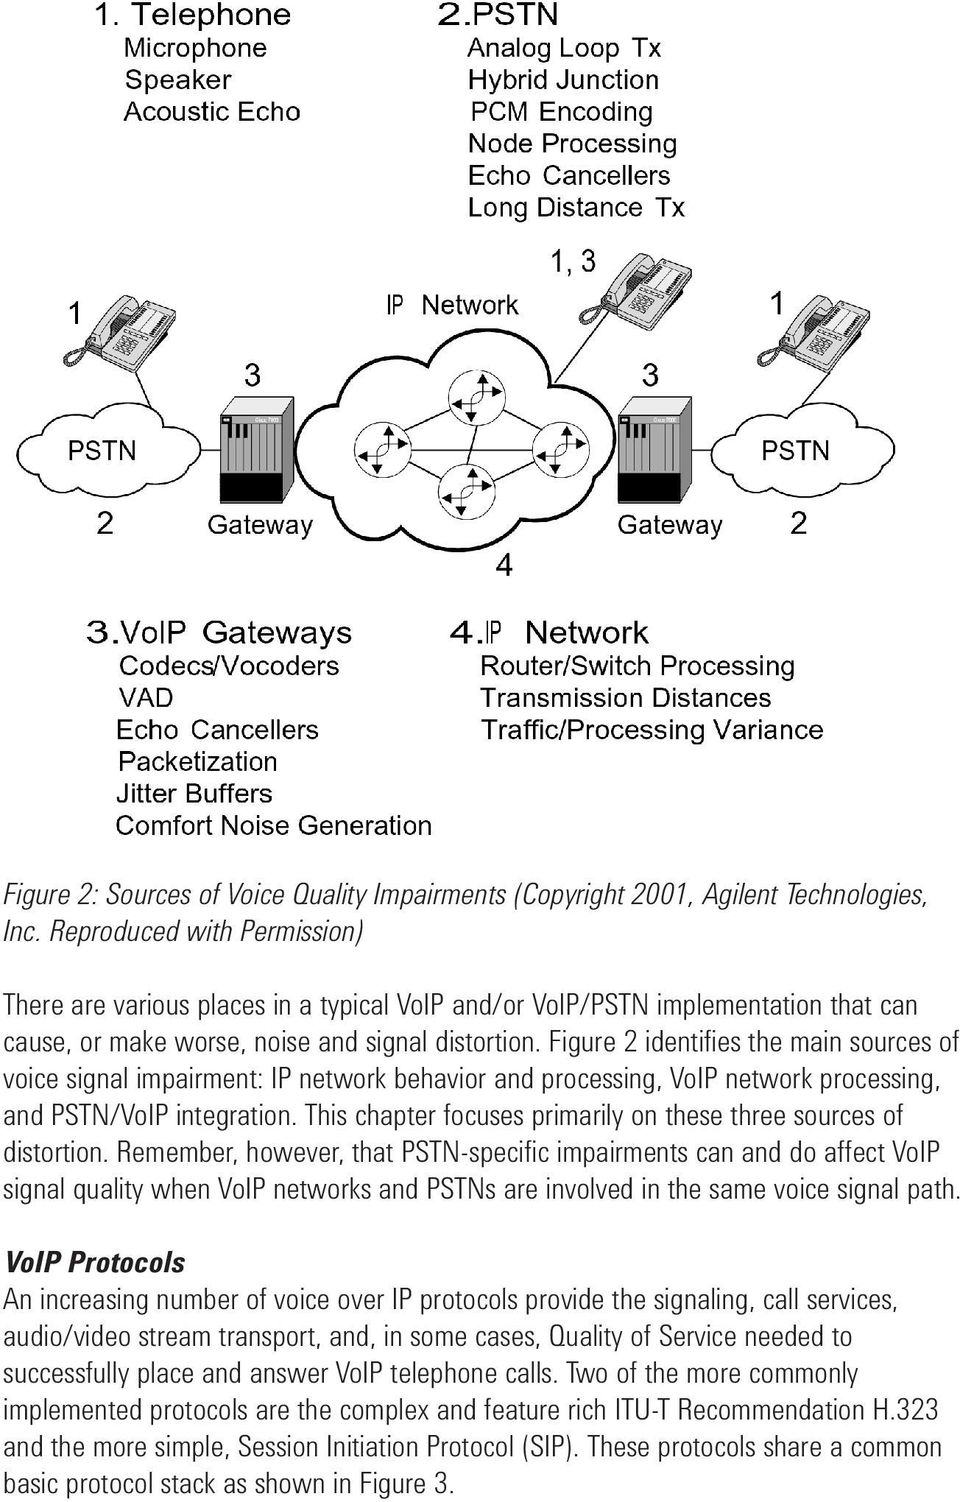 Figure 2 identifies the main sources of voice signal impairment: IP network behavior and processing, VoIP network processing, and PSTN/VoIP integration.